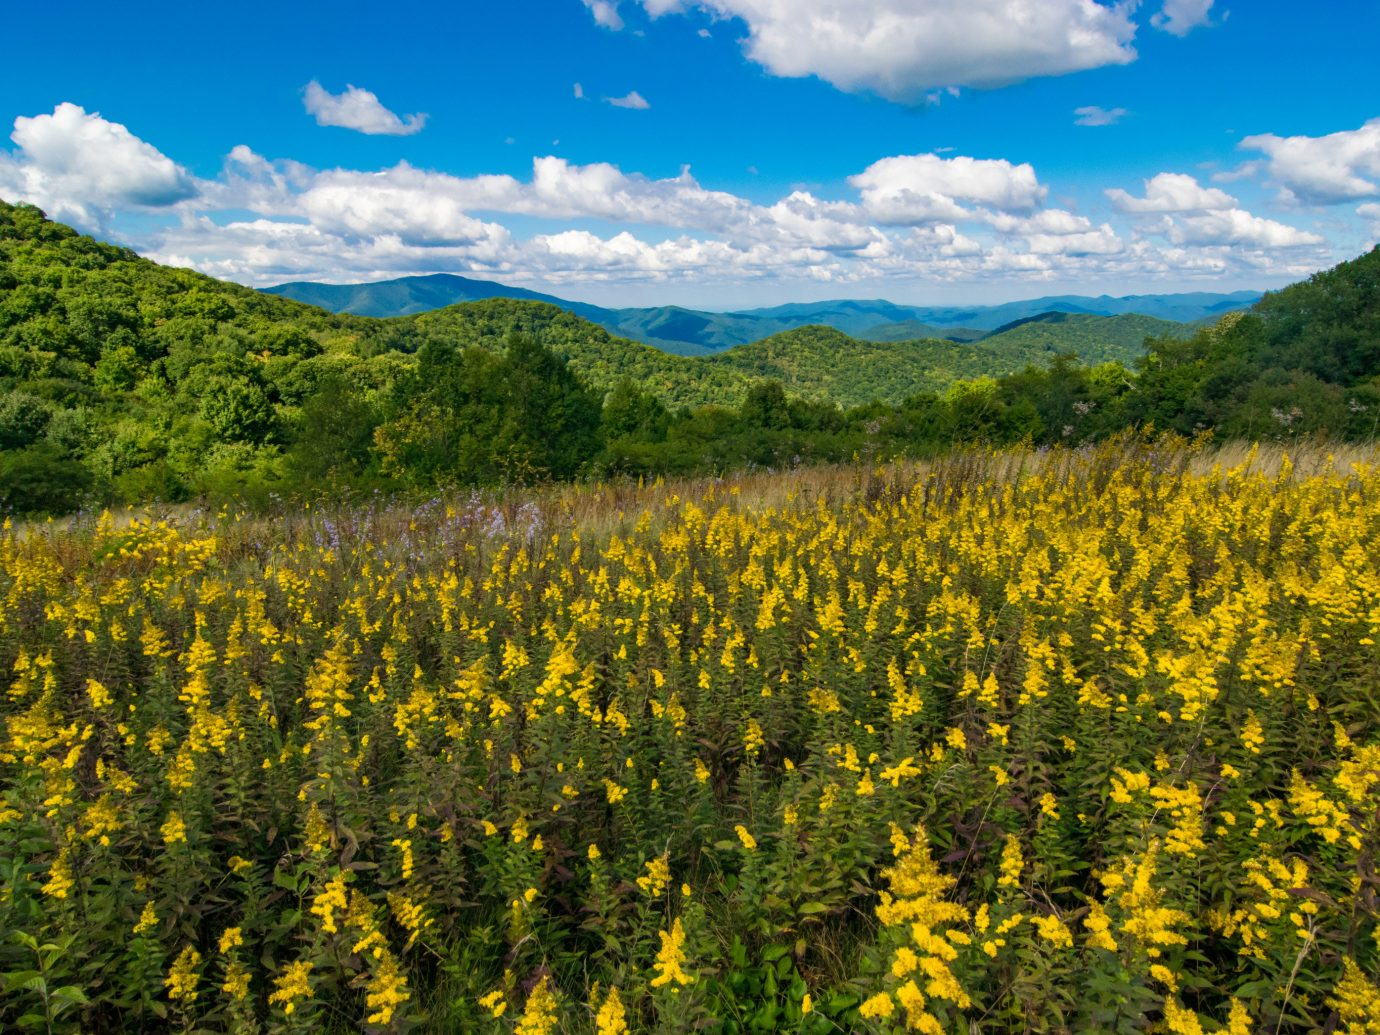 Trip Ideas wildflower wilderness vegetation ecosystem yellow flower field nature reserve meadow sky prairie grassland mountain shrubland landscape tree mount scenery biome national park hill grass mustard plant plant community spring plant rapeseed cloud ecoregion crop agriculture Forest canola